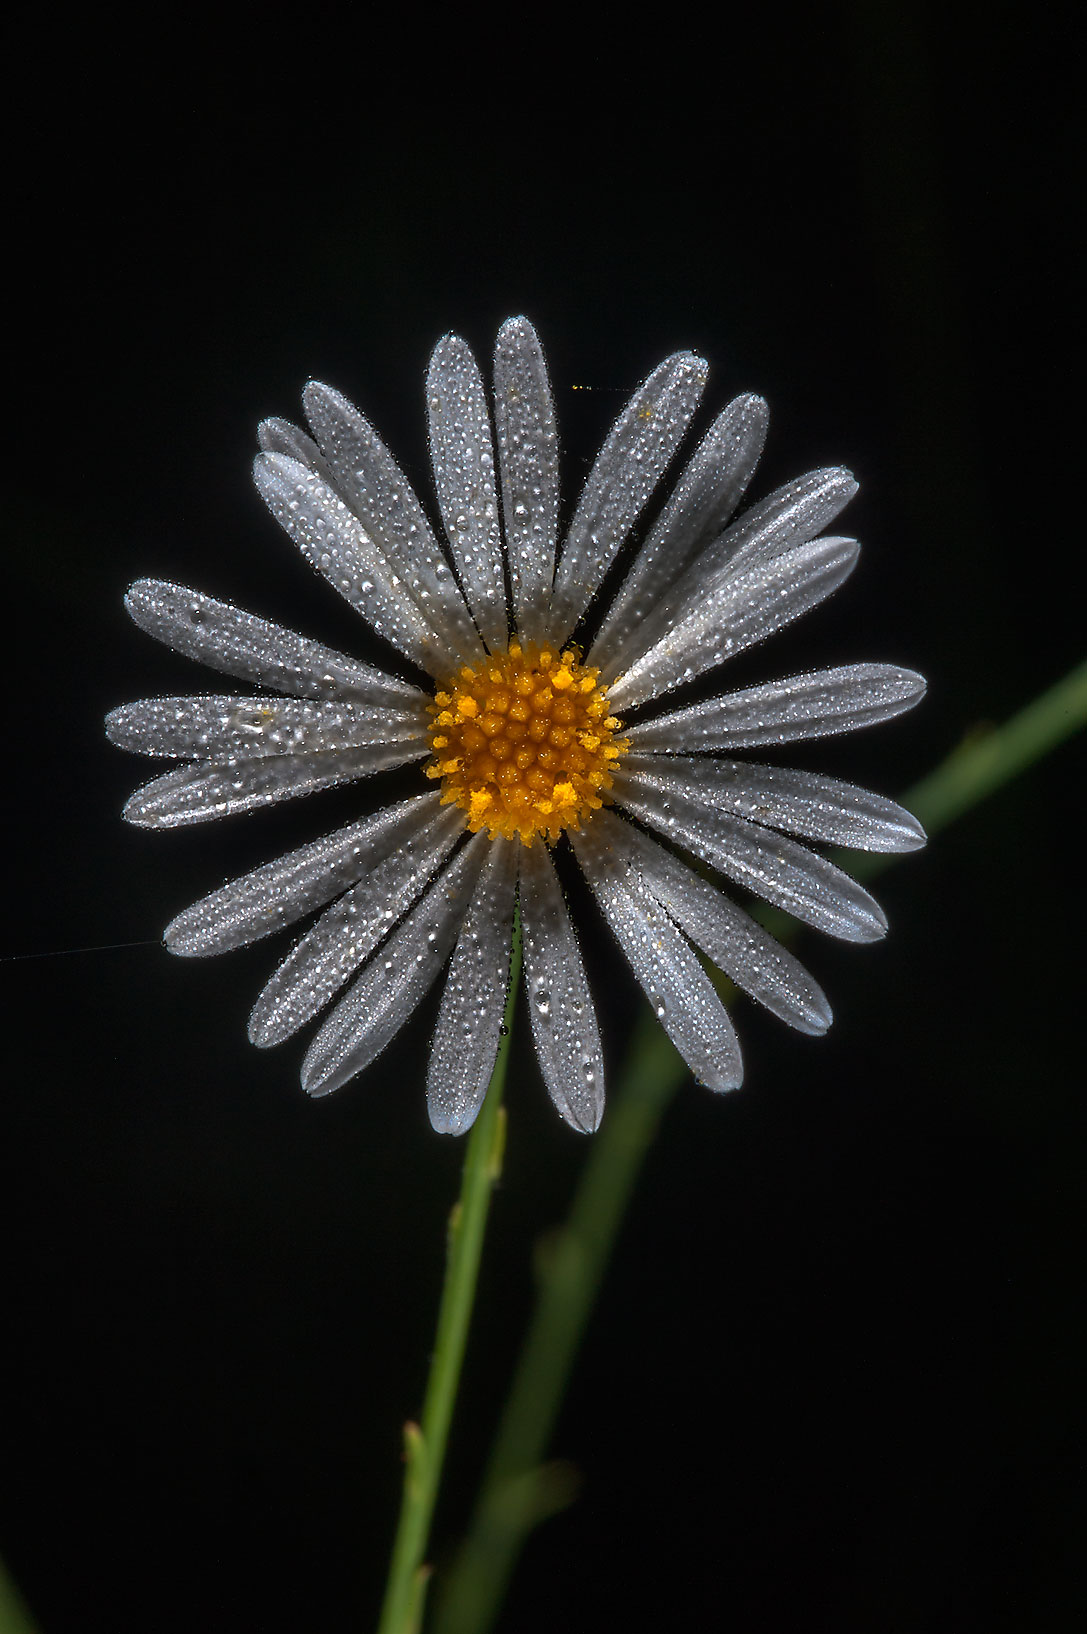 Smallhead doll's daisy (Boltonia diffusa) in Lick Creek Park. College Station, Texas